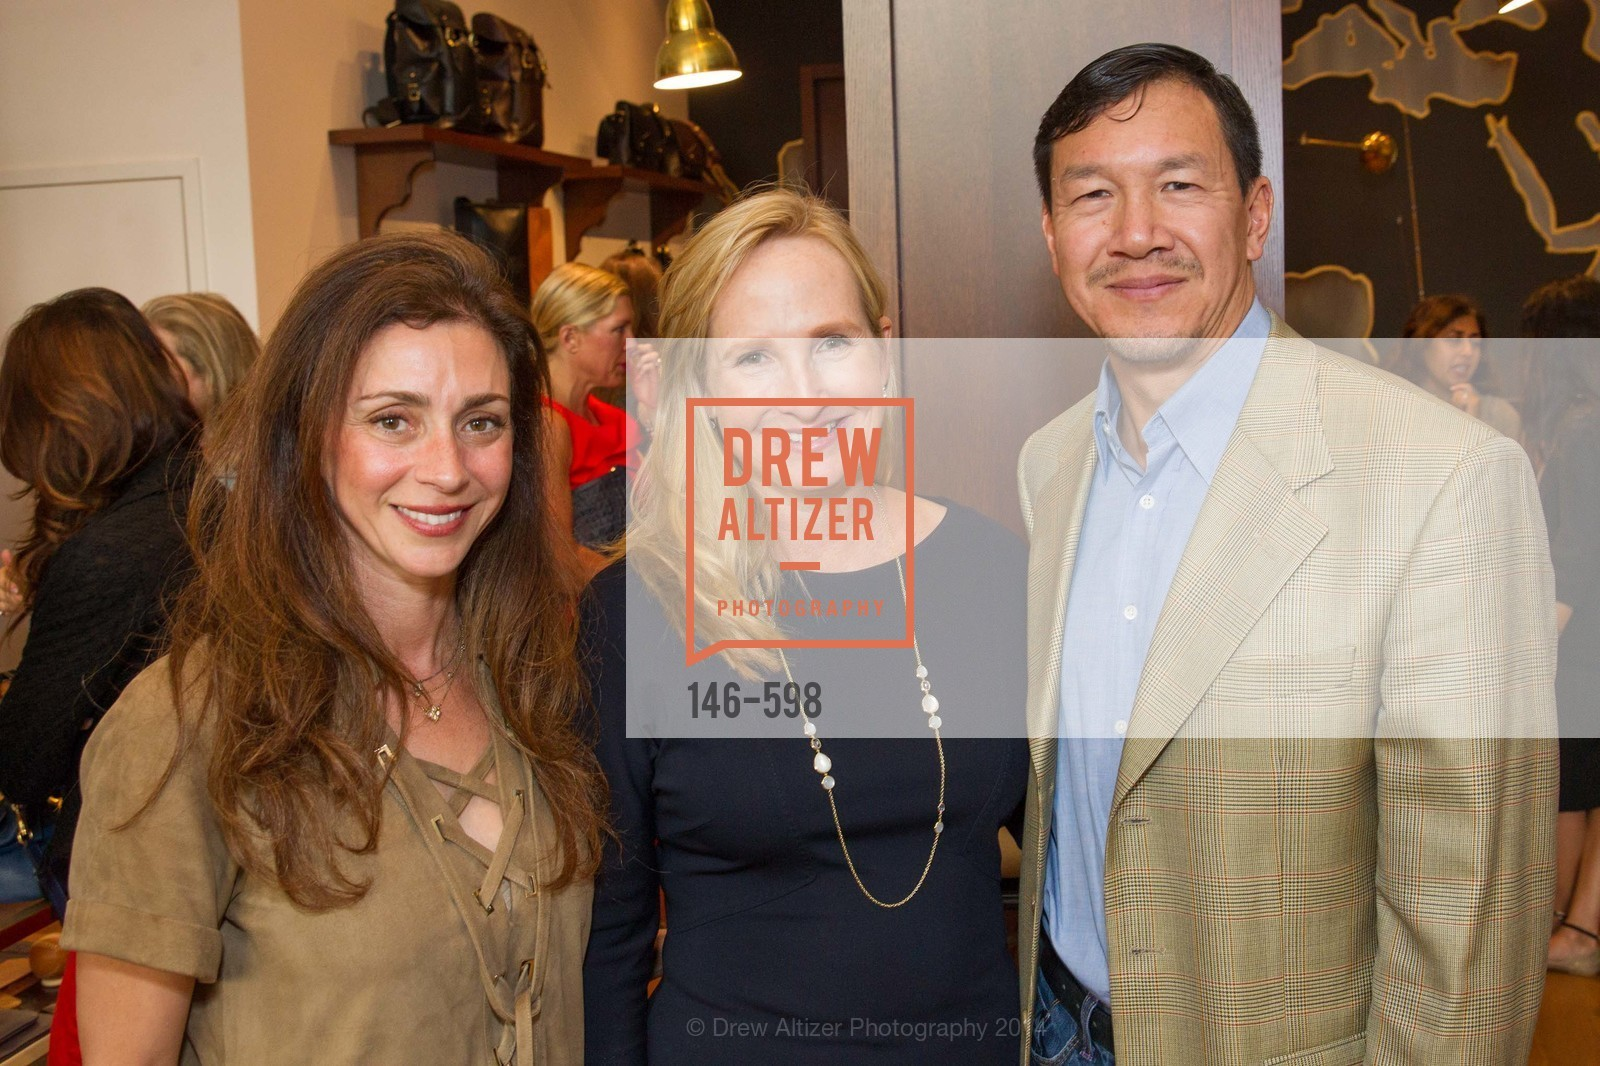 Maryam Muduroglu, Anne Pedrero, Tim Wu, GHURKA FALL FASHION Press Preview Honoring the ZOO BOARD, US, October 8th, 2014,Drew Altizer, Drew Altizer Photography, full-service agency, private events, San Francisco photographer, photographer california